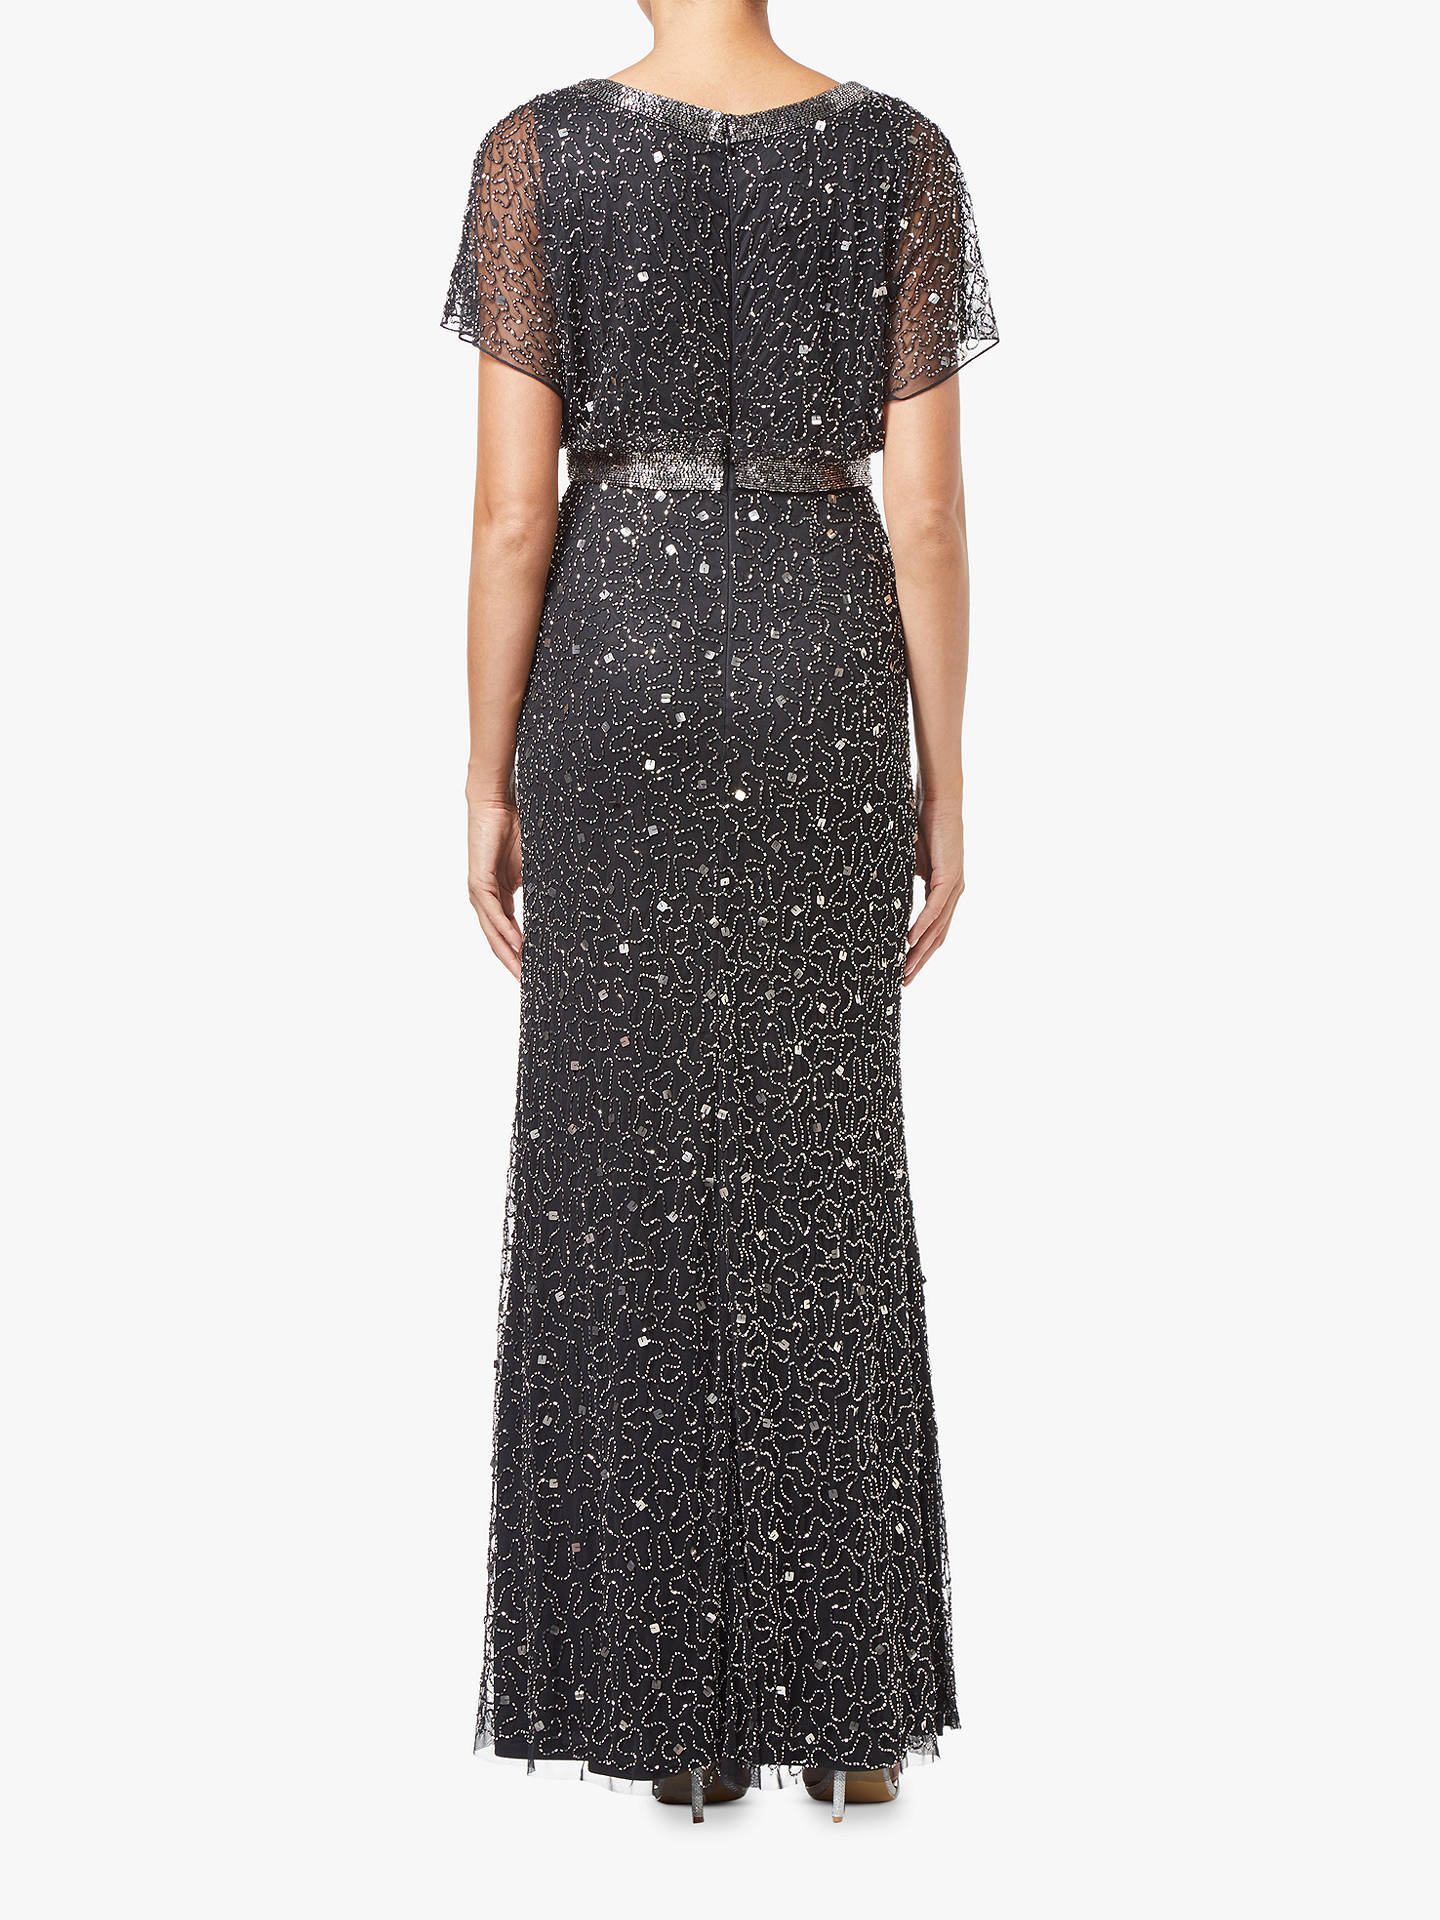 BuyAdrianna Papell Abstract V-Neck Beaded Dress, Grey, 8 Online at johnlewis.com